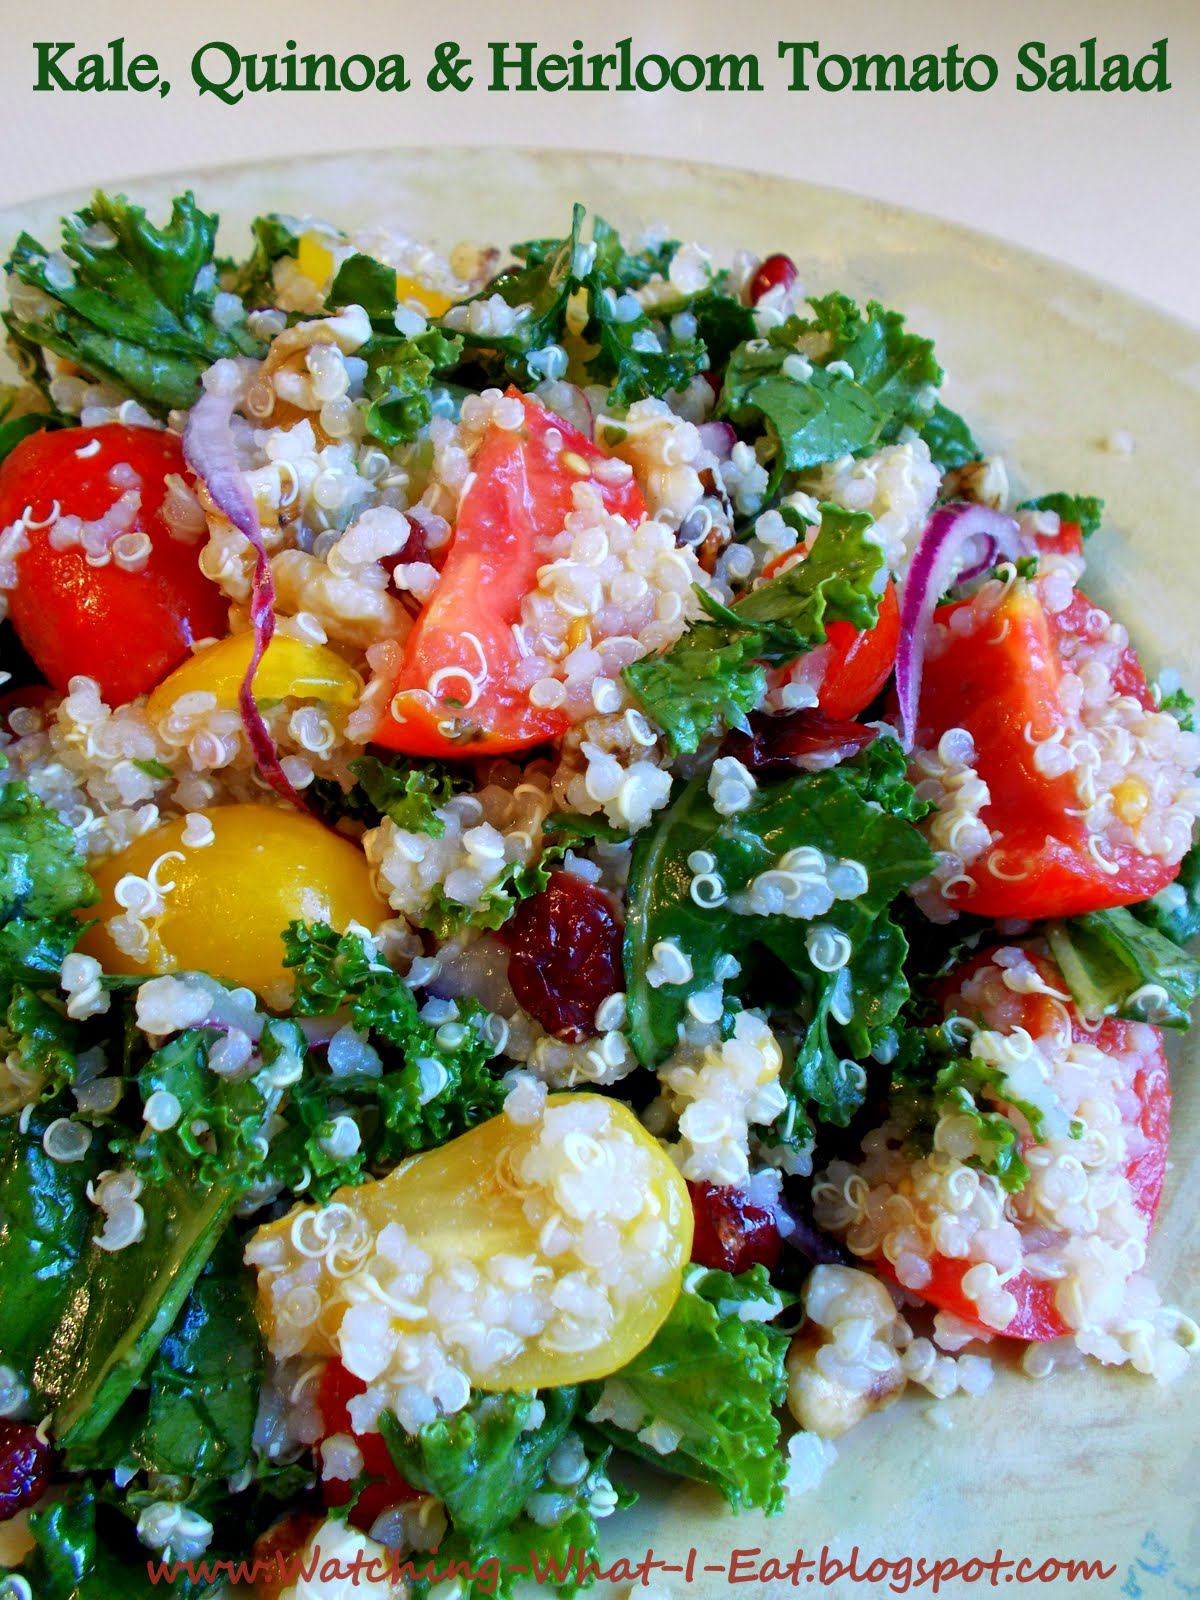 ... What I Eat: Kale, Quinoa and Heirloom Tomato Salad ~ Meatless Monday